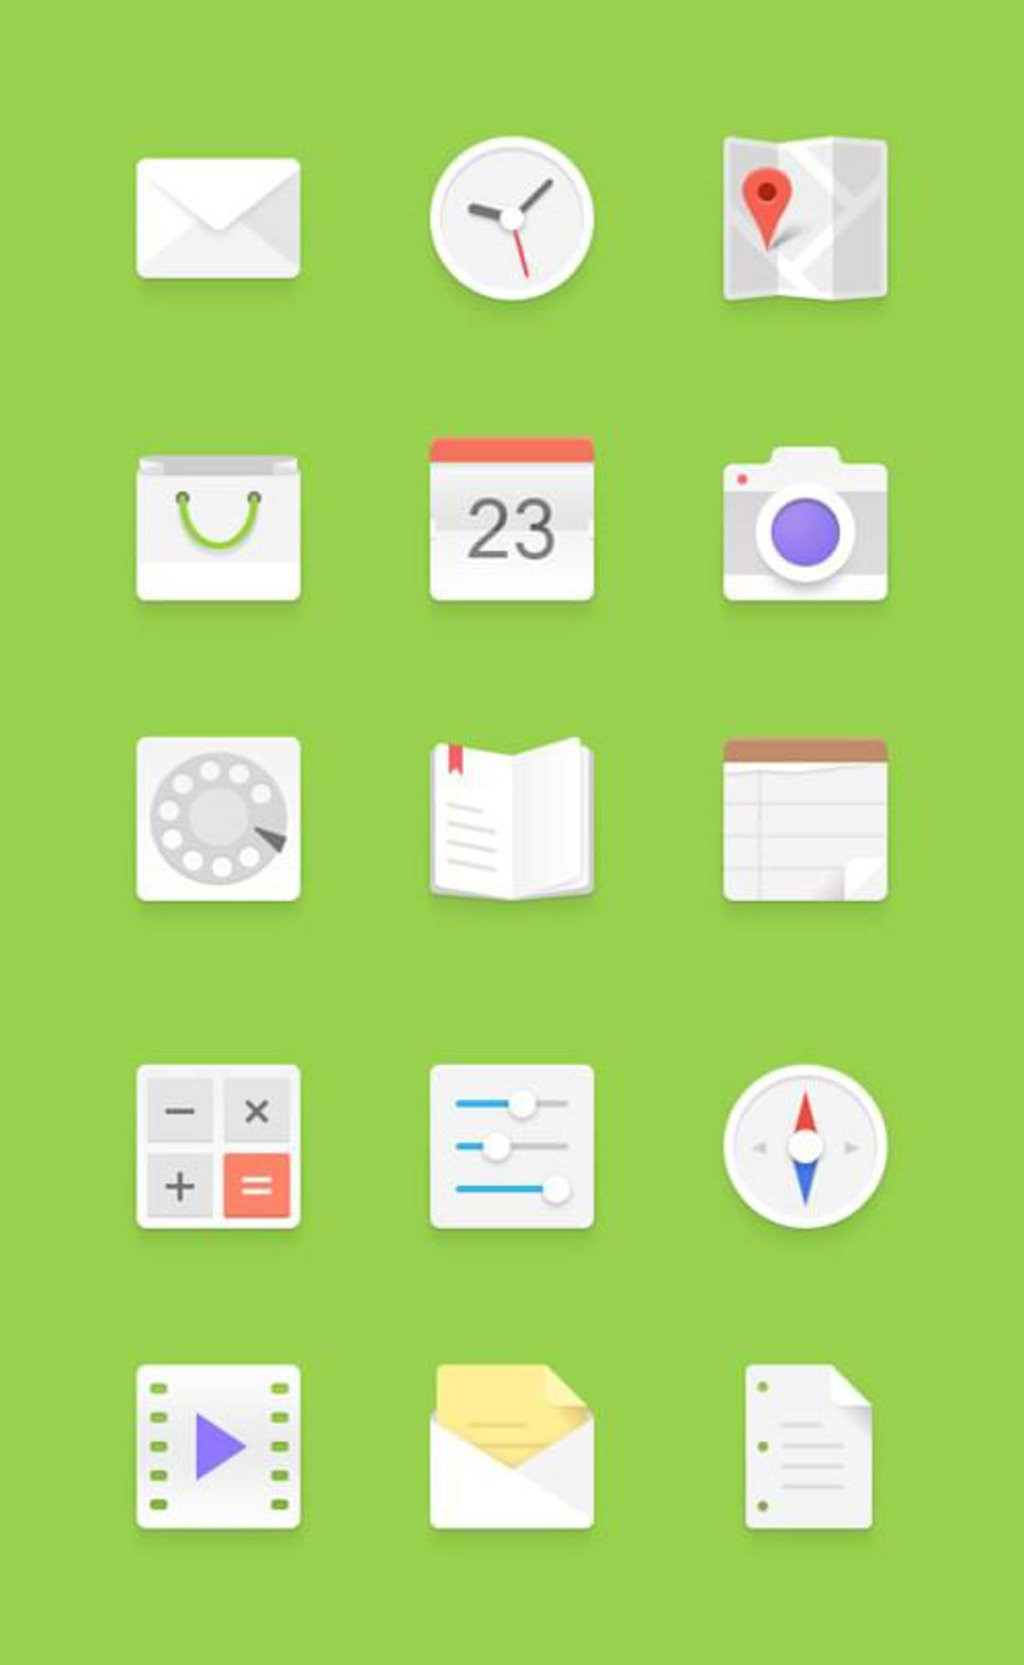 34-Icones-Android-flat-design-par-GraphicBurger